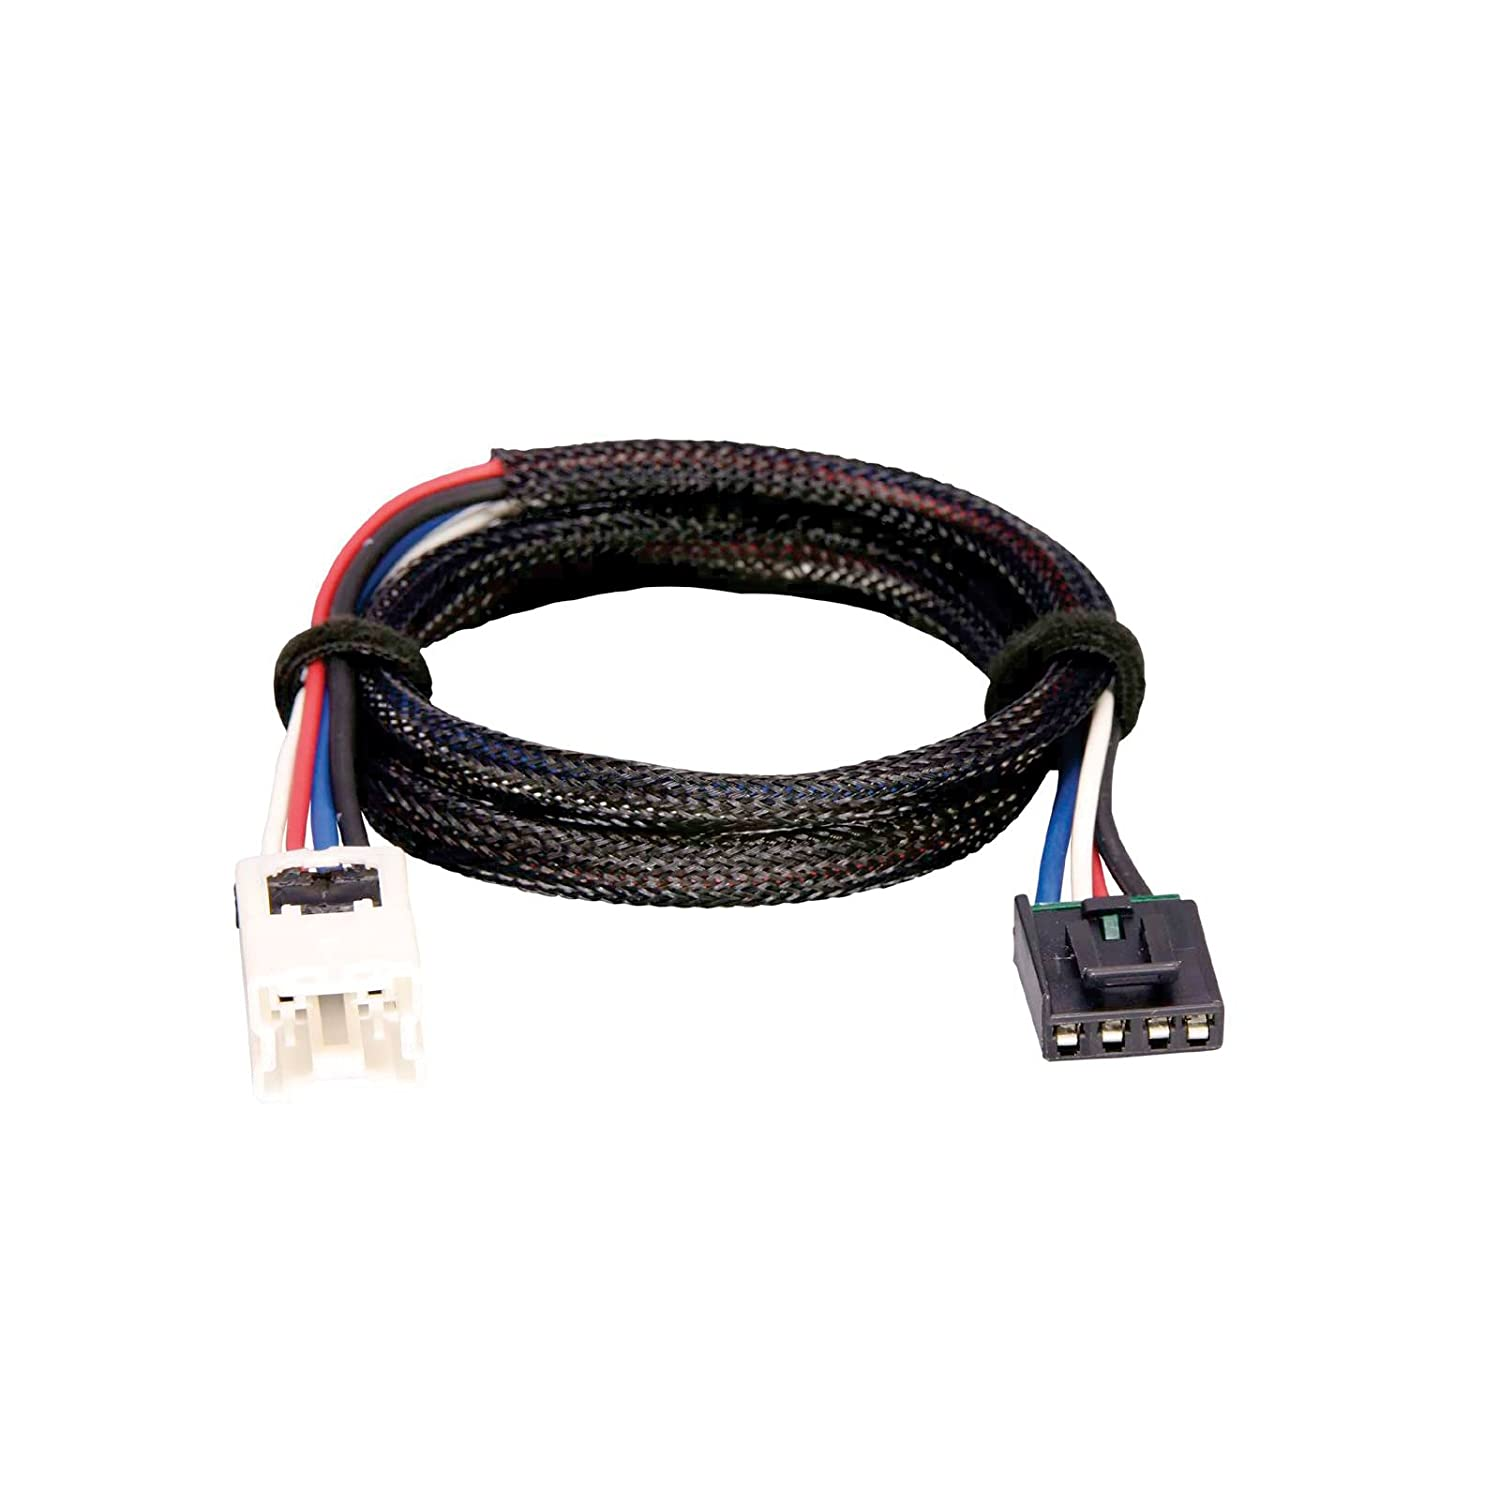 Tekonsha 3050 P Brake Control Wiring Adapter For Nissan Money To Canada Controls Amazon